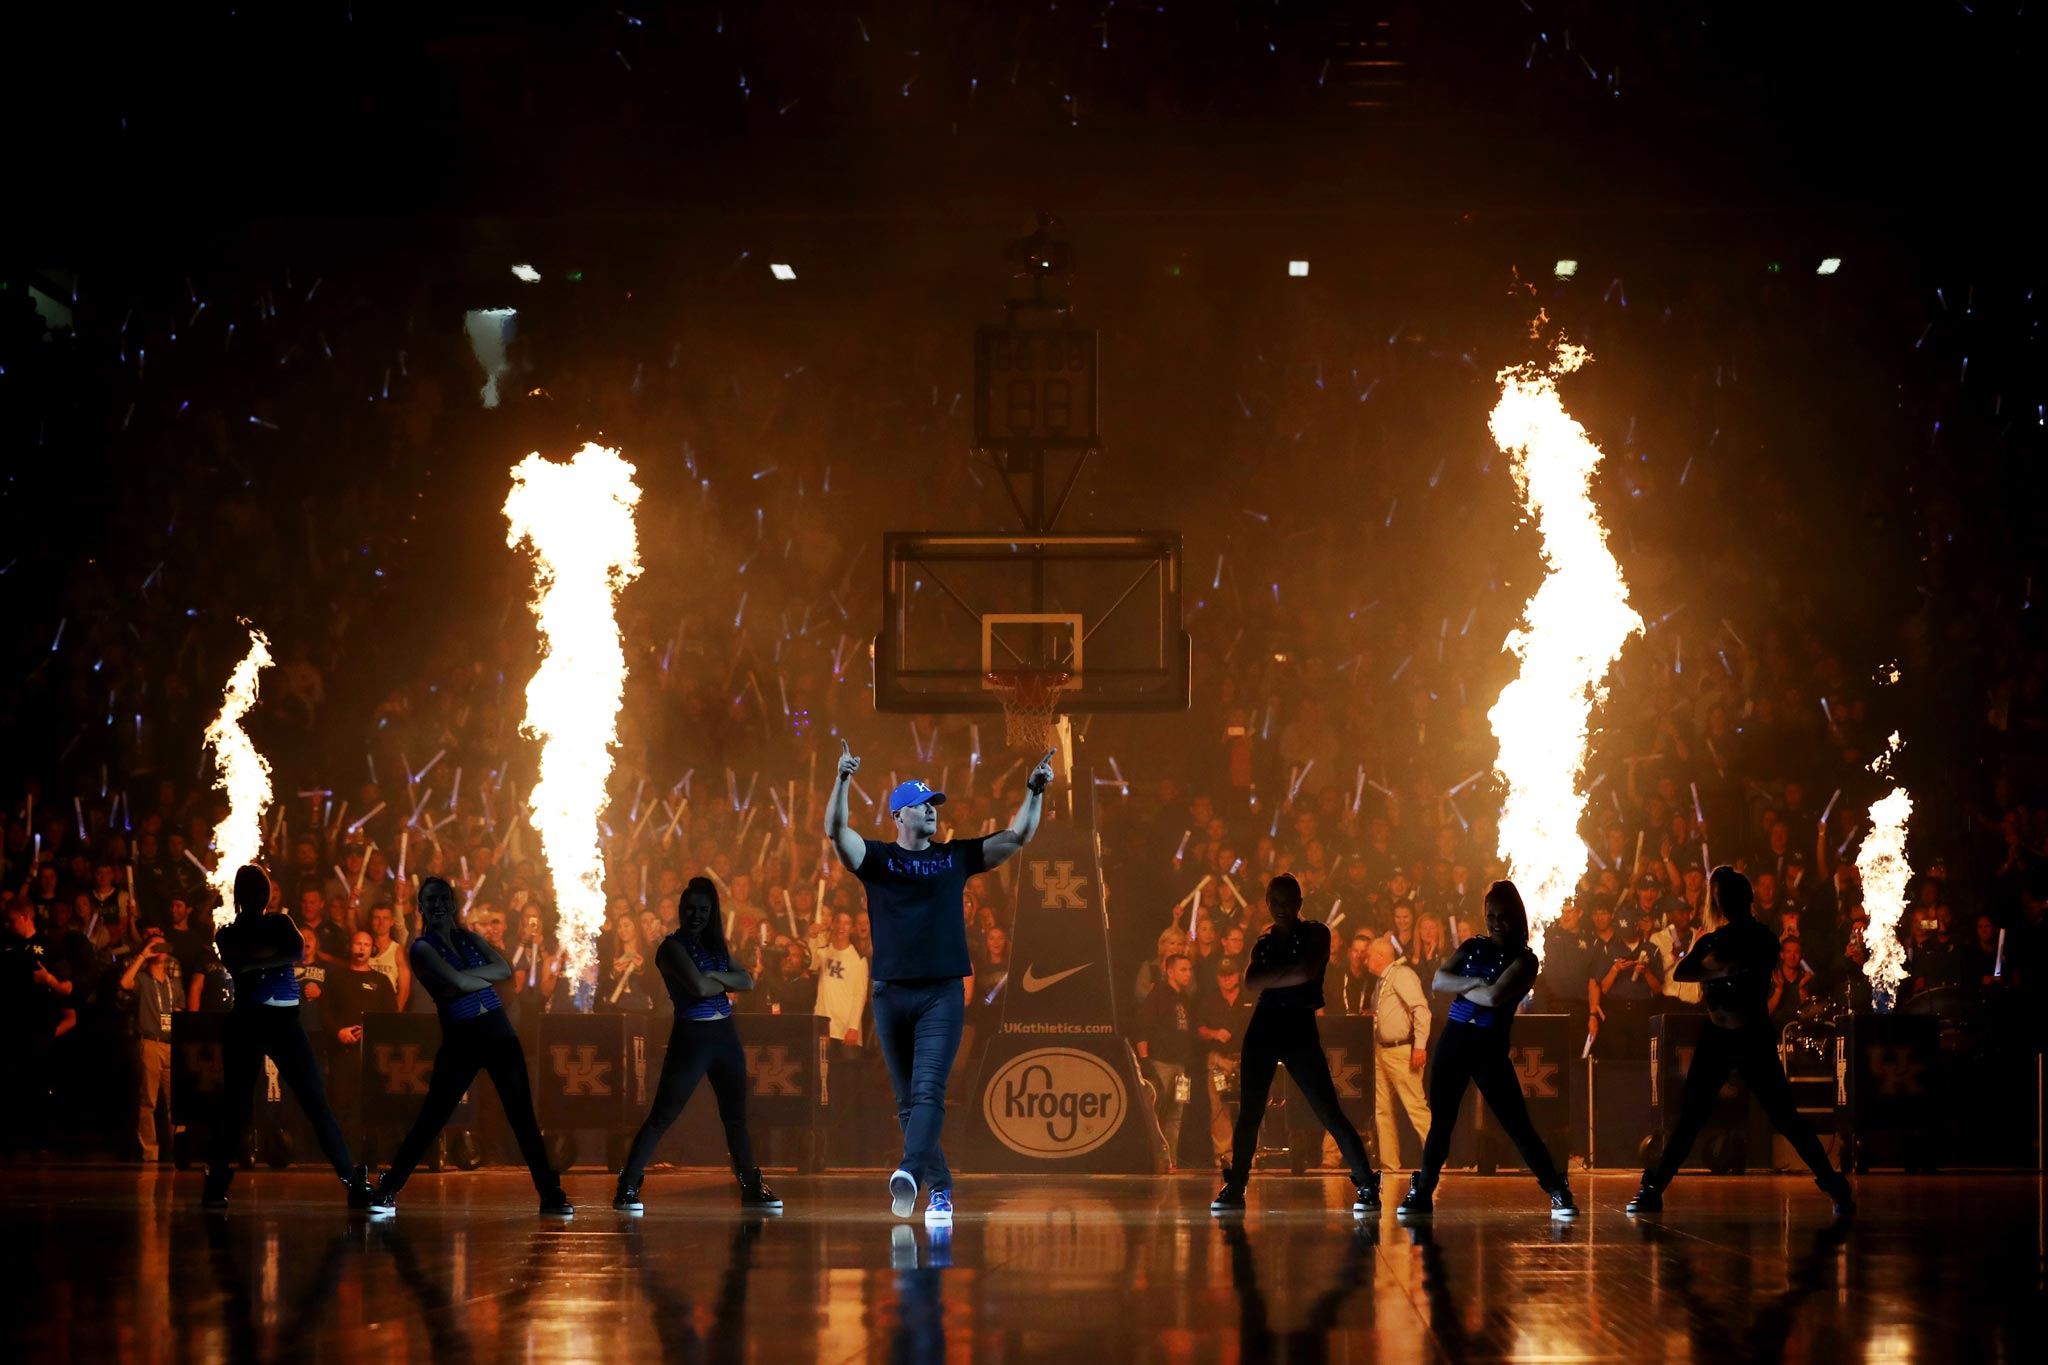 Coach Mitchell dances on the court with the UK dance team dancing behind him and pyrotechnics flaming in the air. The stadium is packed with people.